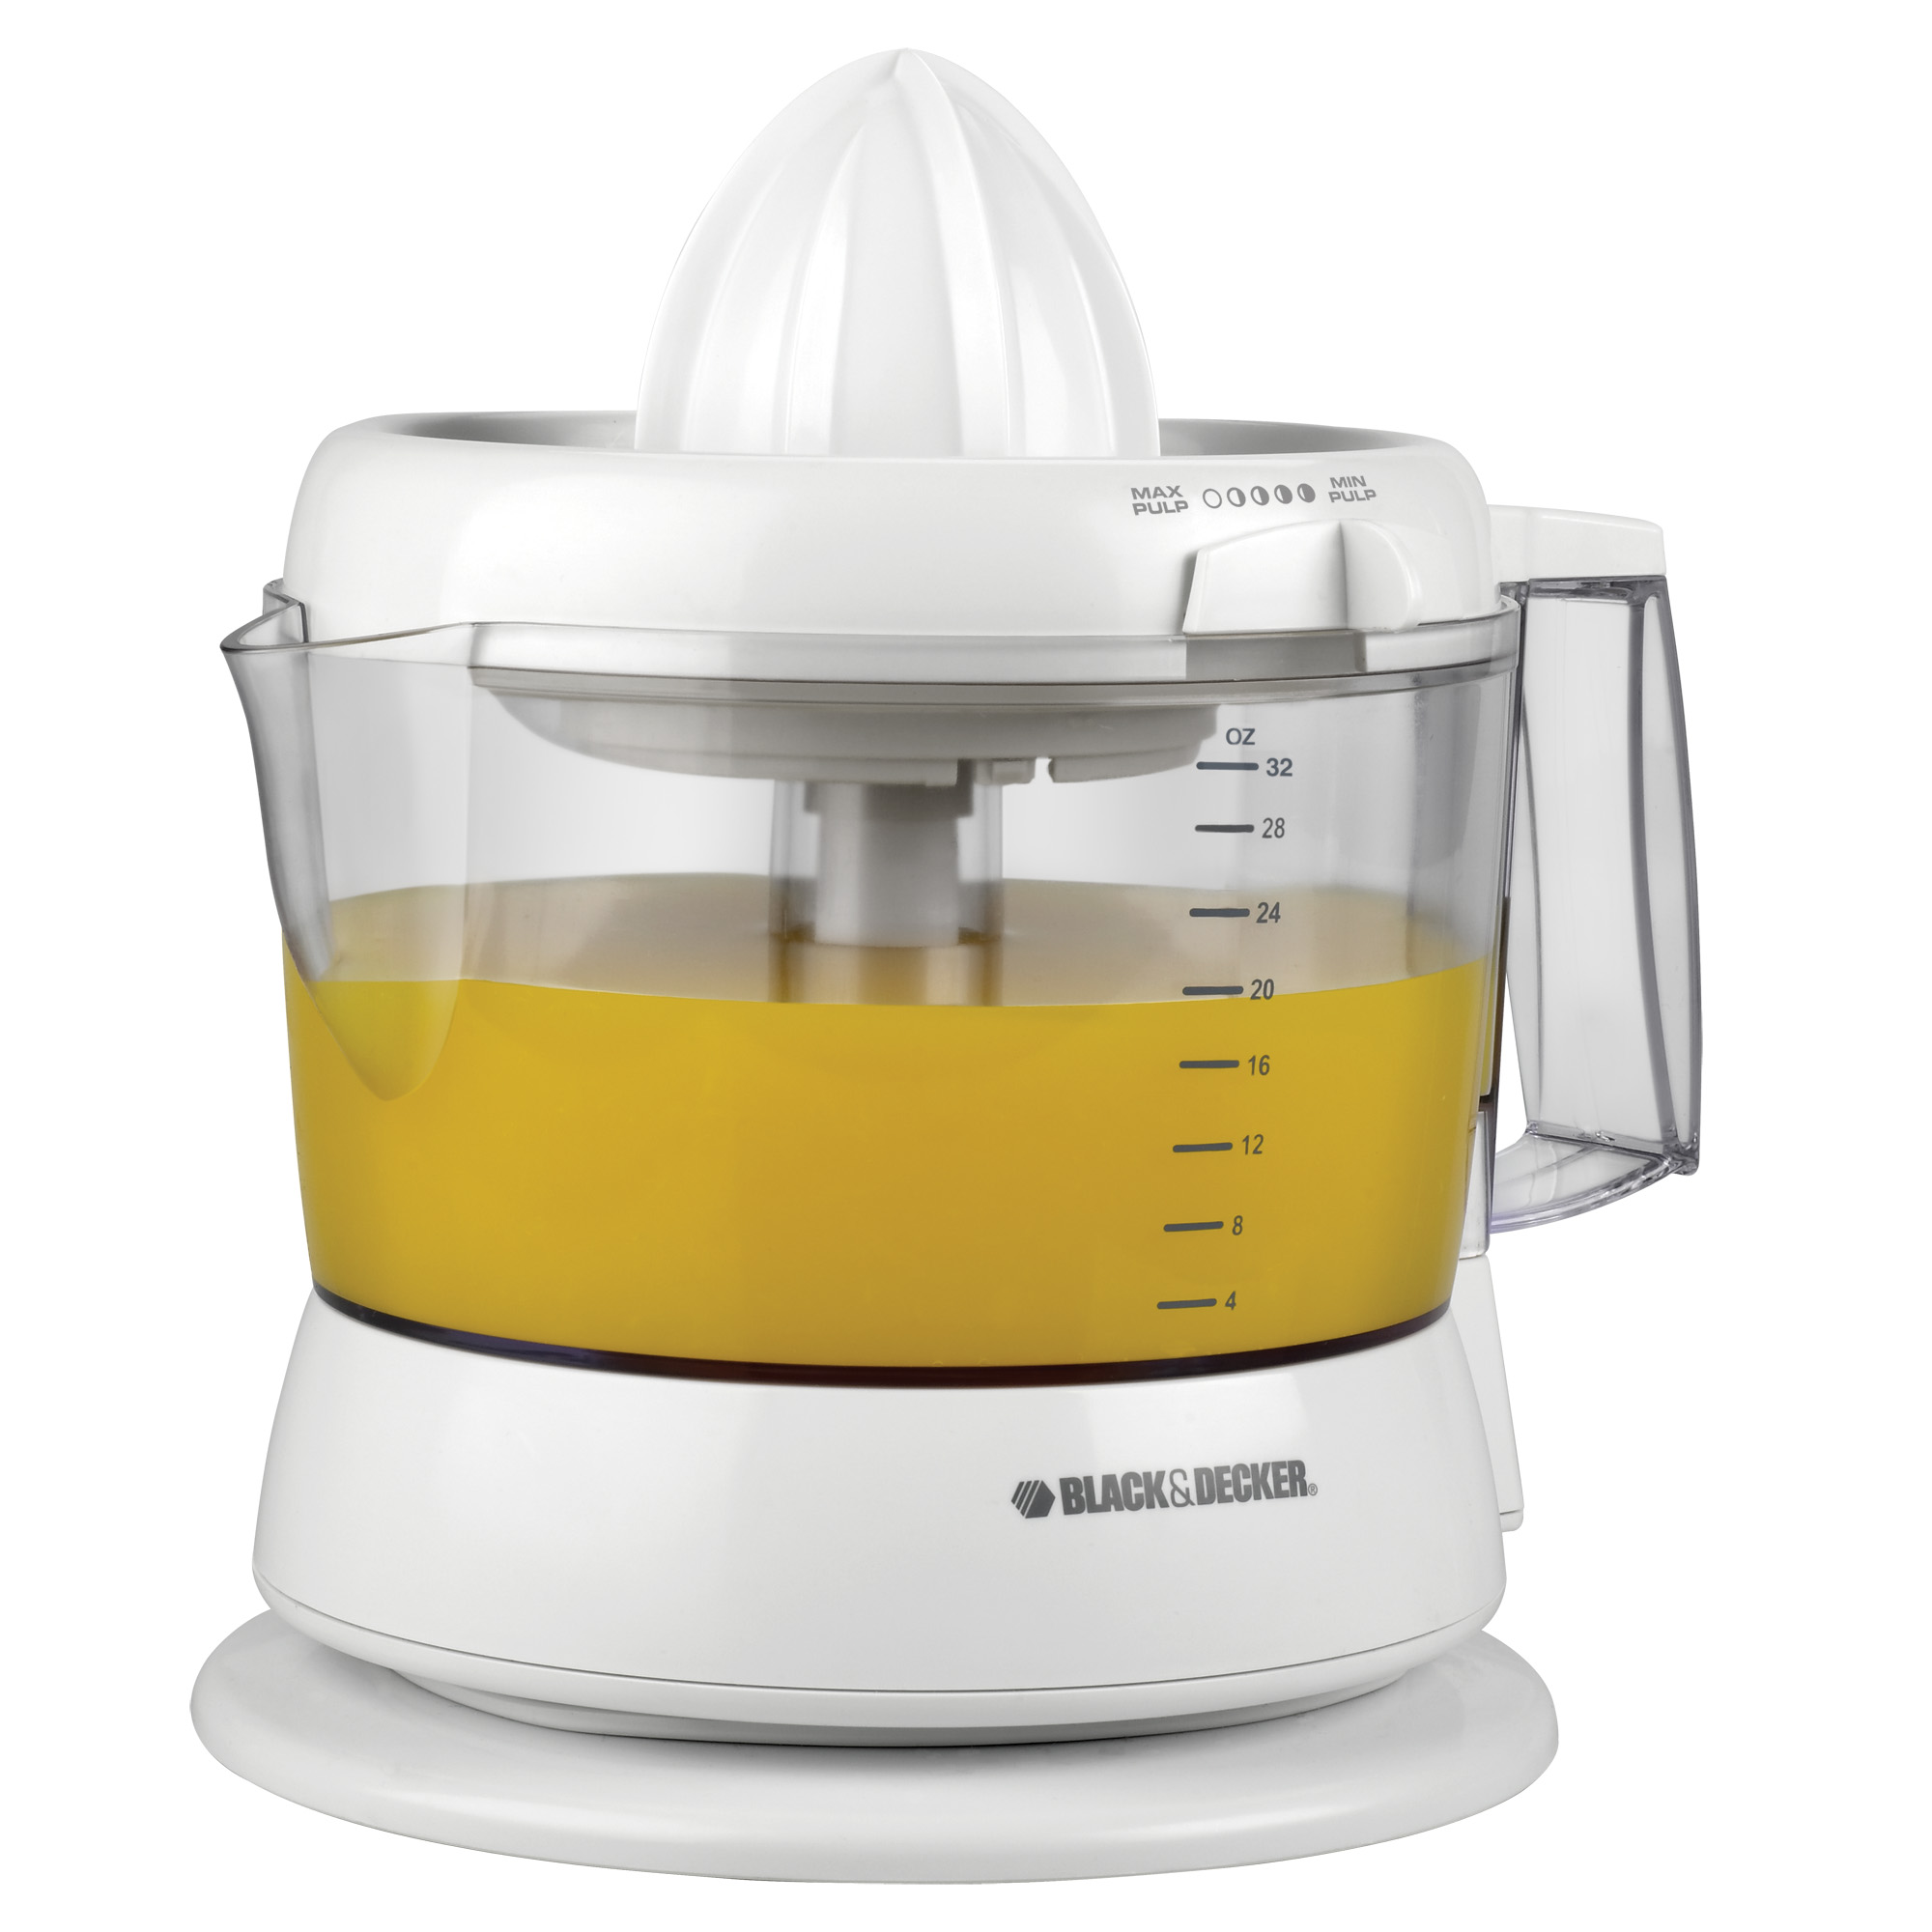 Slow Juicer Canadian Tire : Buy Citrus Juicer Juice Machine Black and Decker CJ630